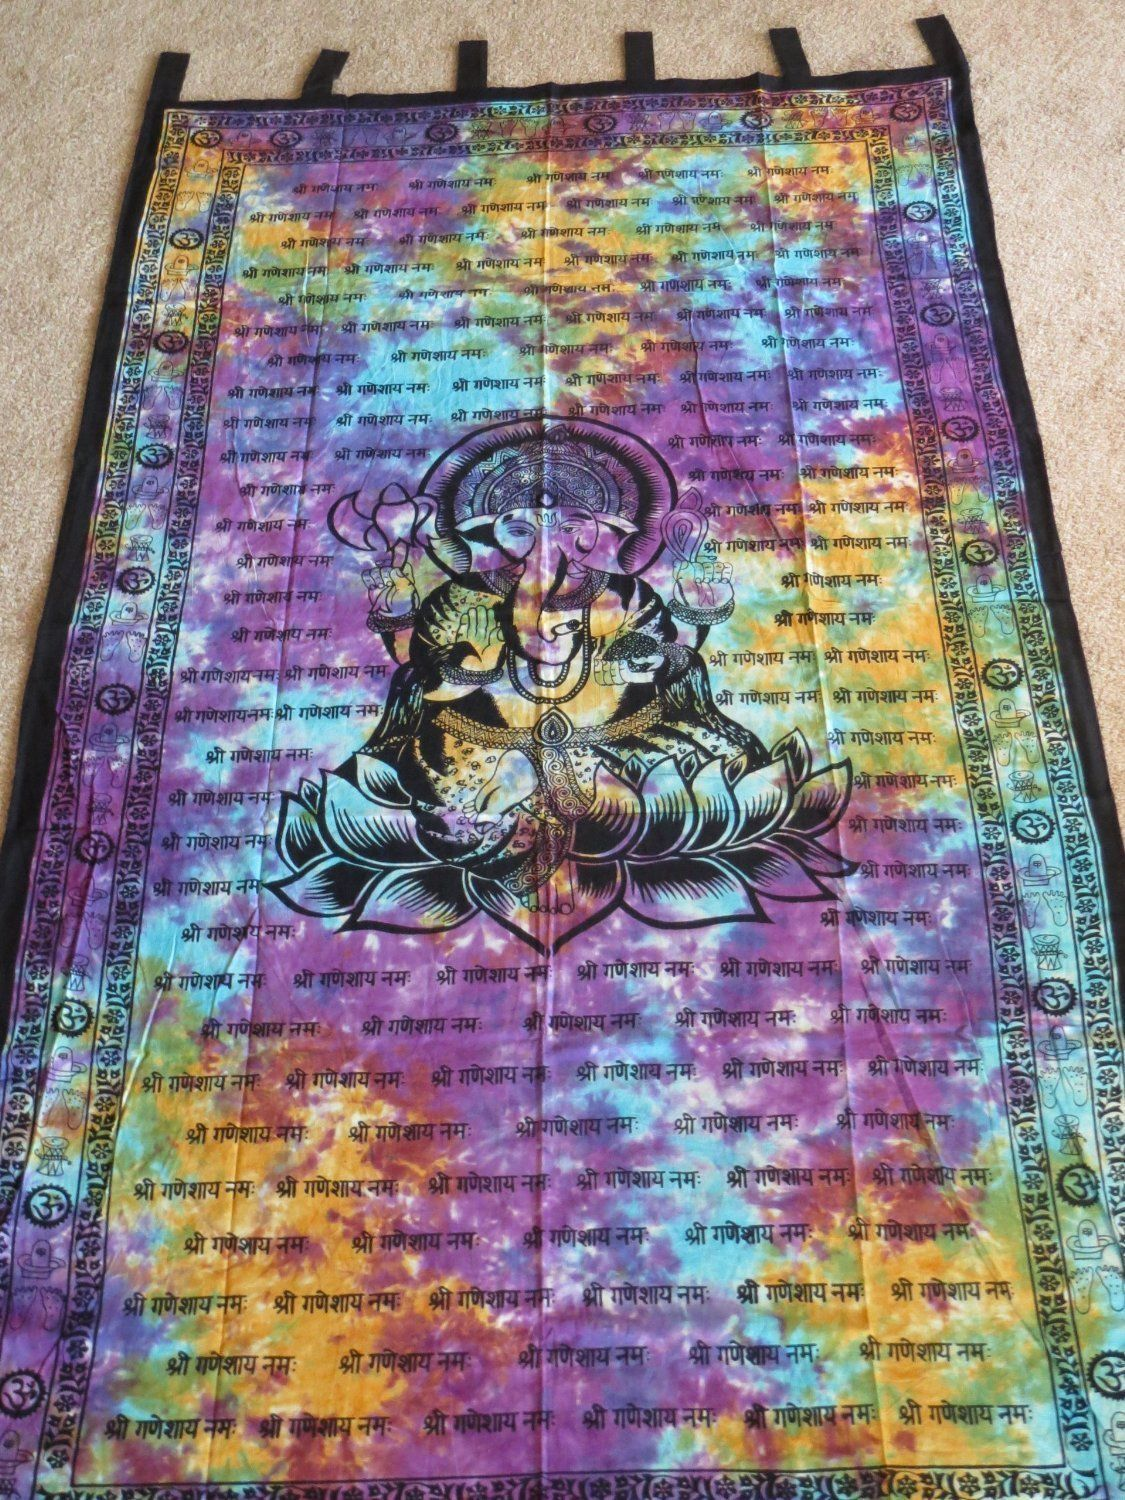 Lord Ganesh GANESHA Hindu Tie Dye Indian TAPESTRY Wall Hang Door Window CURTAIN - Thumbnail 1 ... & Lord Ganesh GANESHA Hindu Tie Dye Indian TAPESTRY Wall Hang Door ...